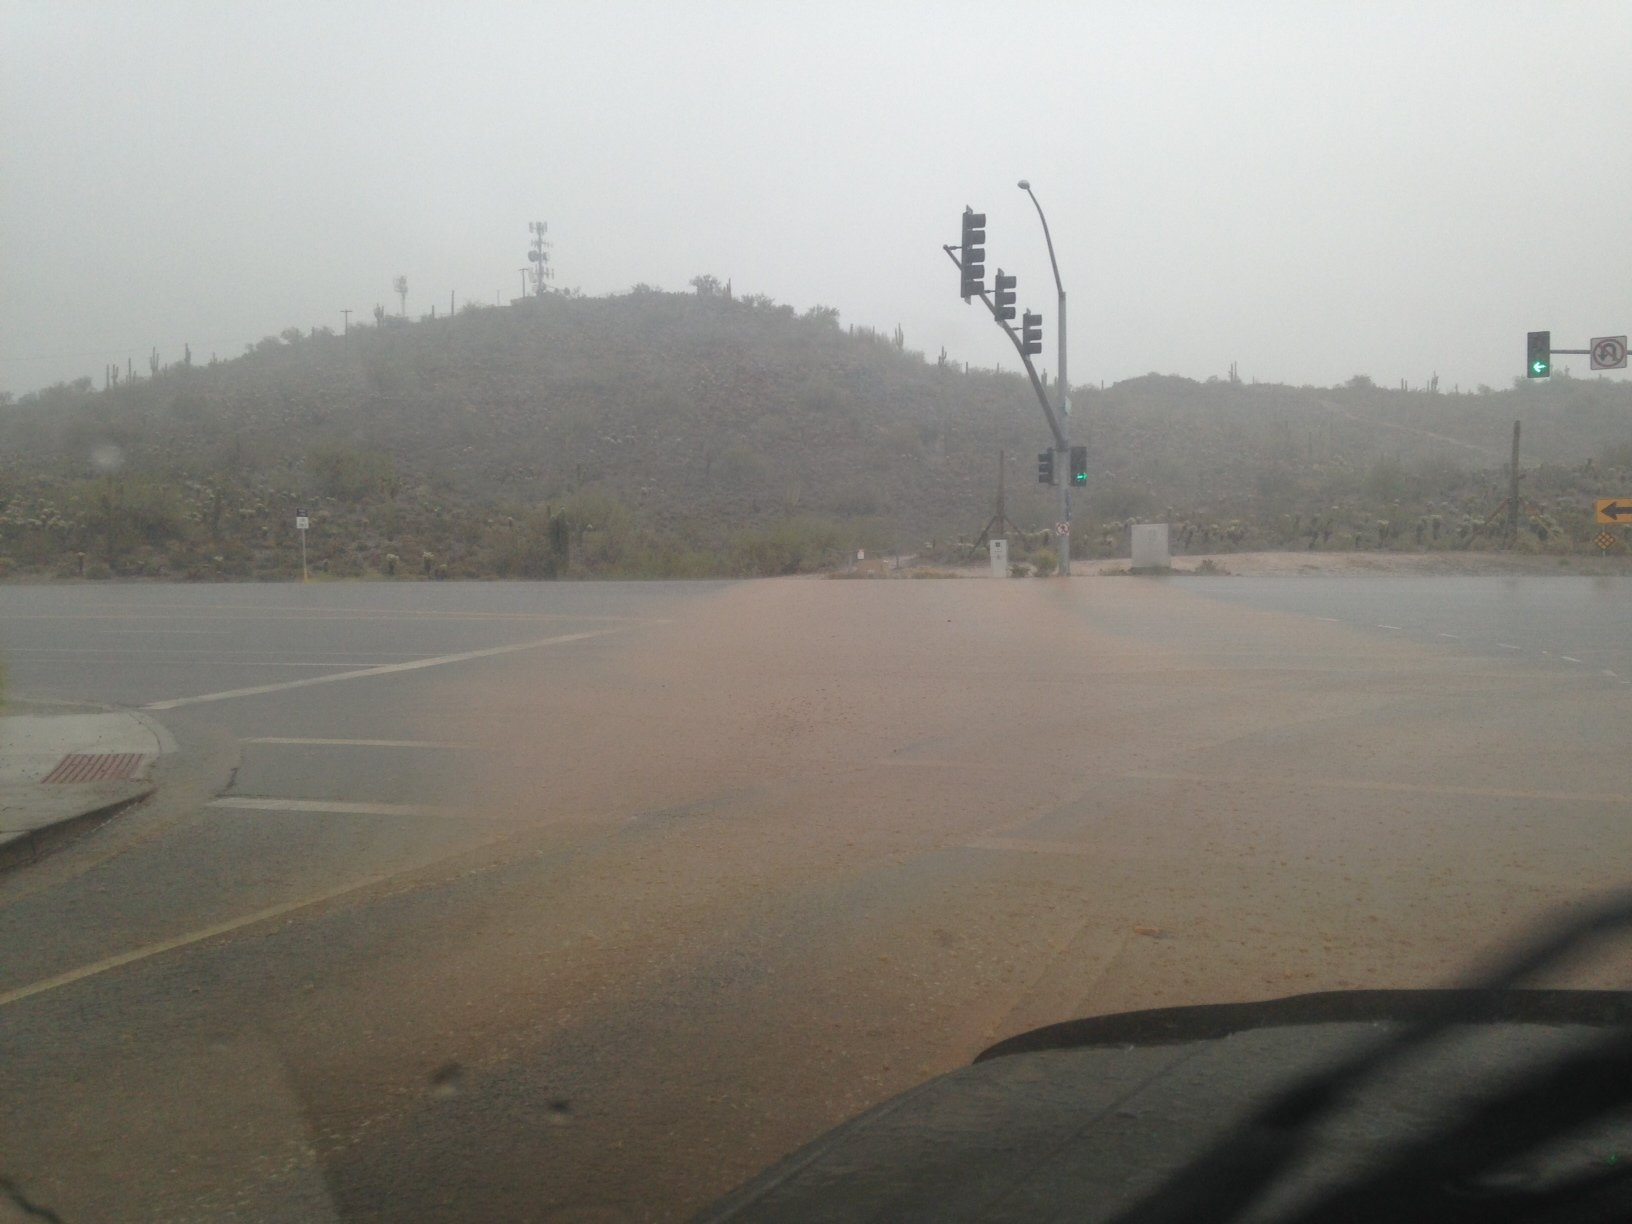 Running water flows across Gavilan Peak Parkway at the Pioneer Road exit in Anthem. (Source: Sean Gates, cbs5az.com)